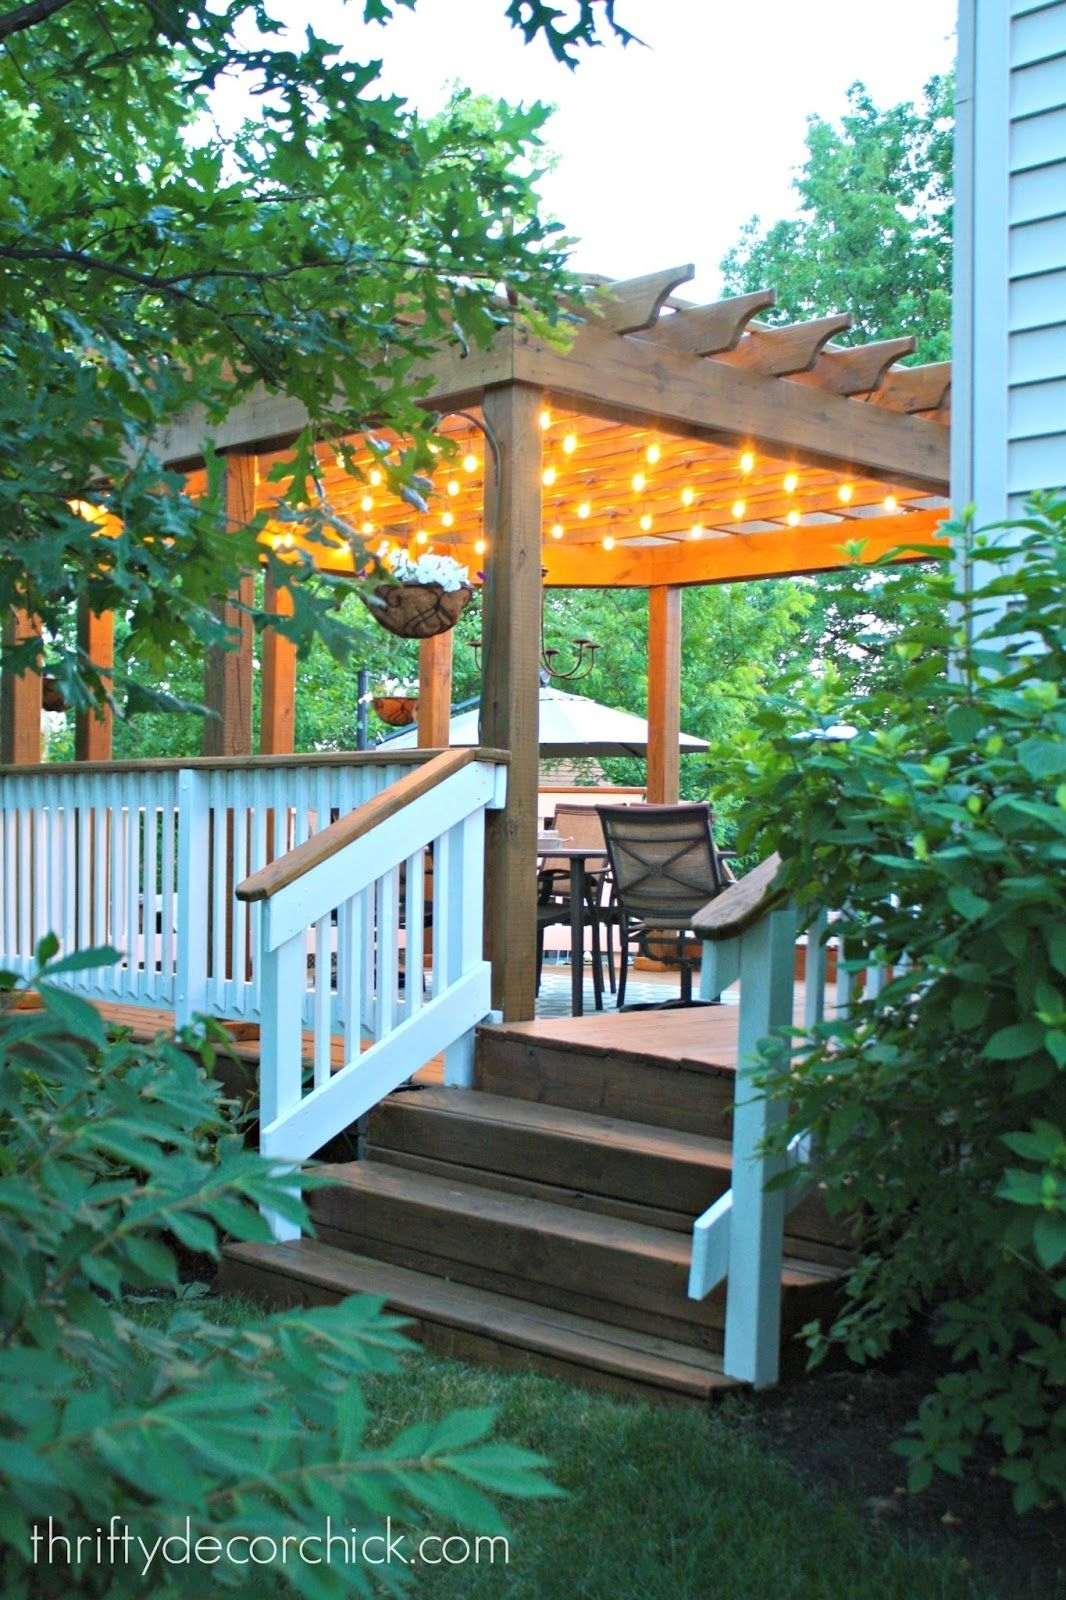 How To Hang Outdoor String Lights | Pergolas, Lights And Decking With Regard To Outdoor Lanterns For Deck (View 17 of 20)